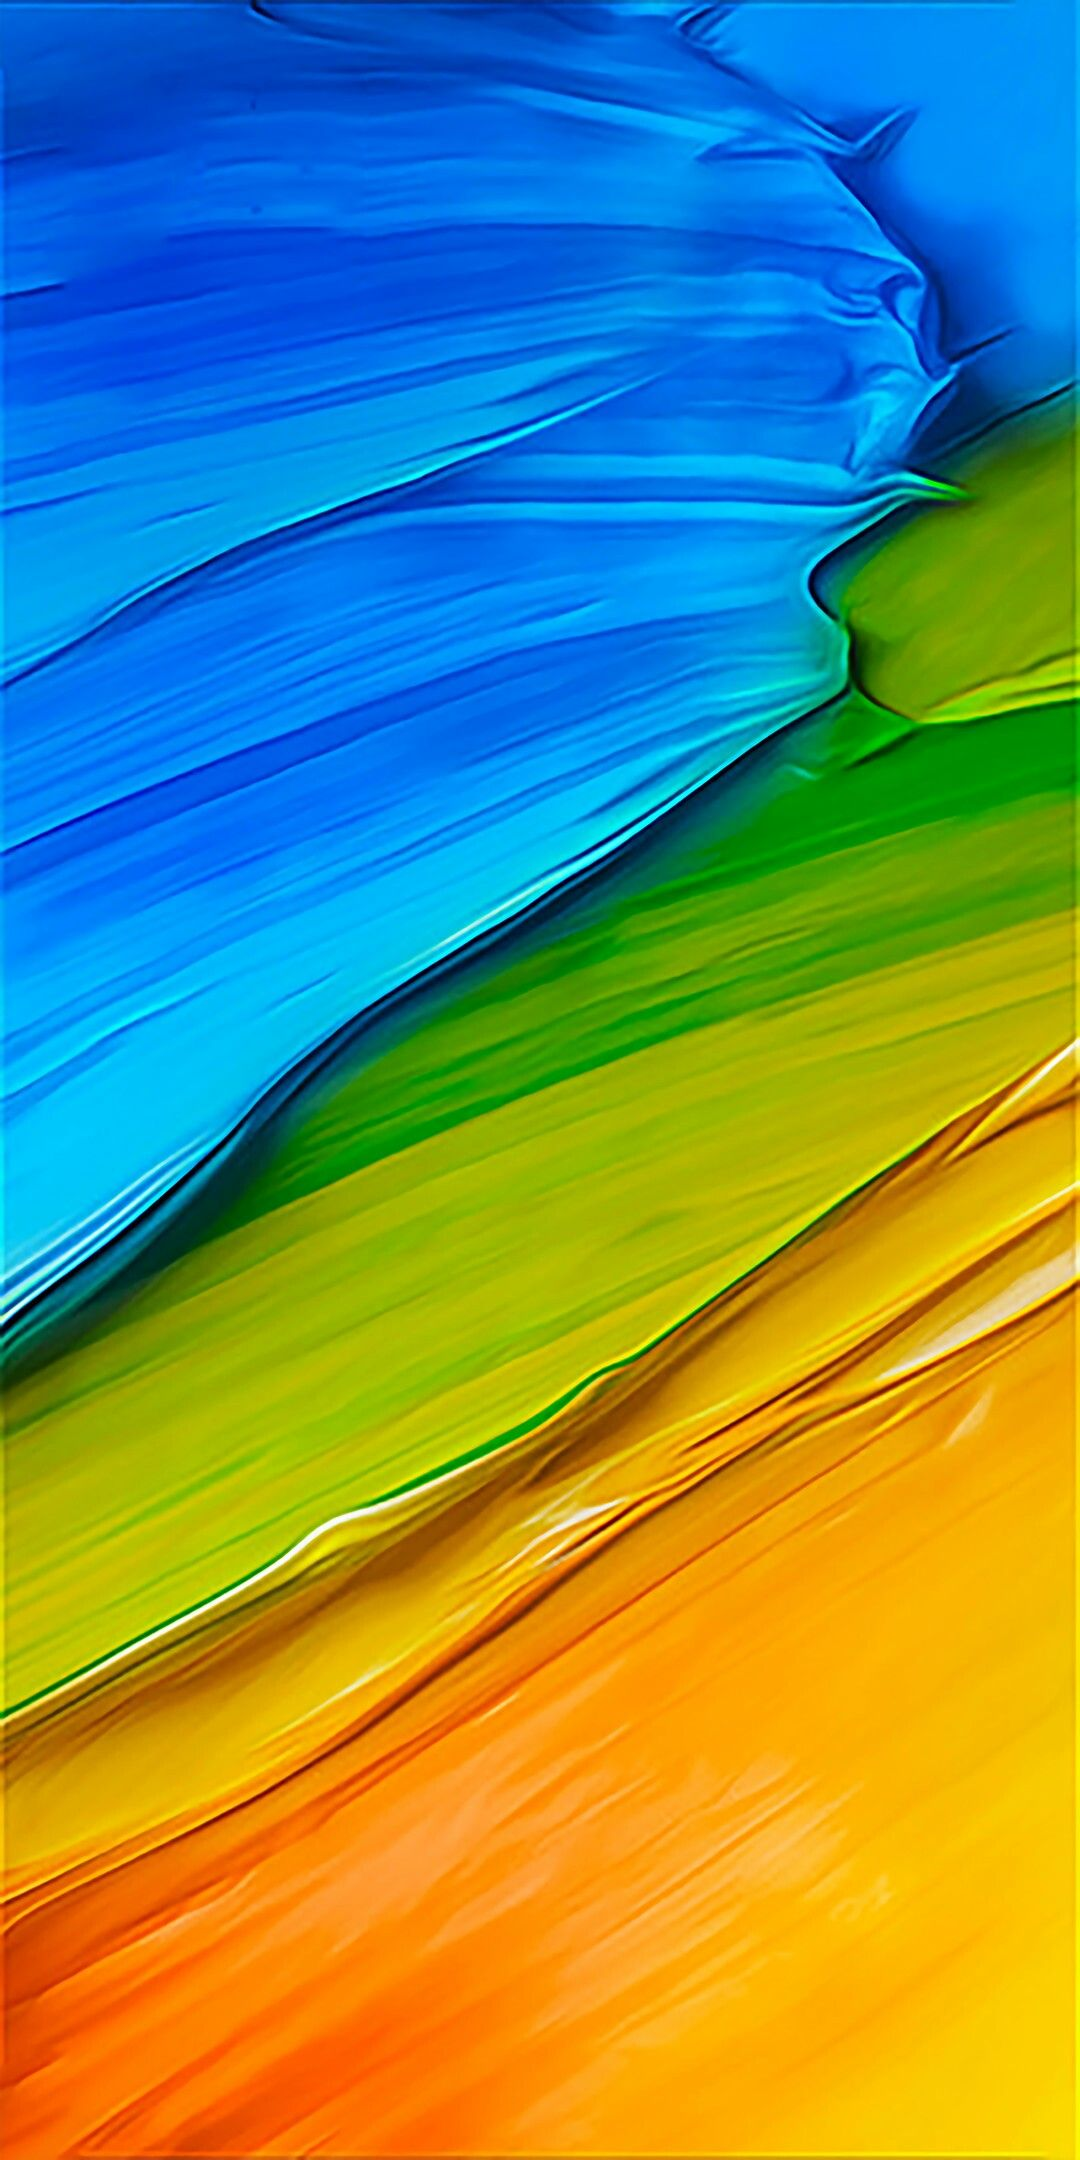 Redmi 5 Plus Lockscren Abstract Amoled Liquid Gradient Mobile